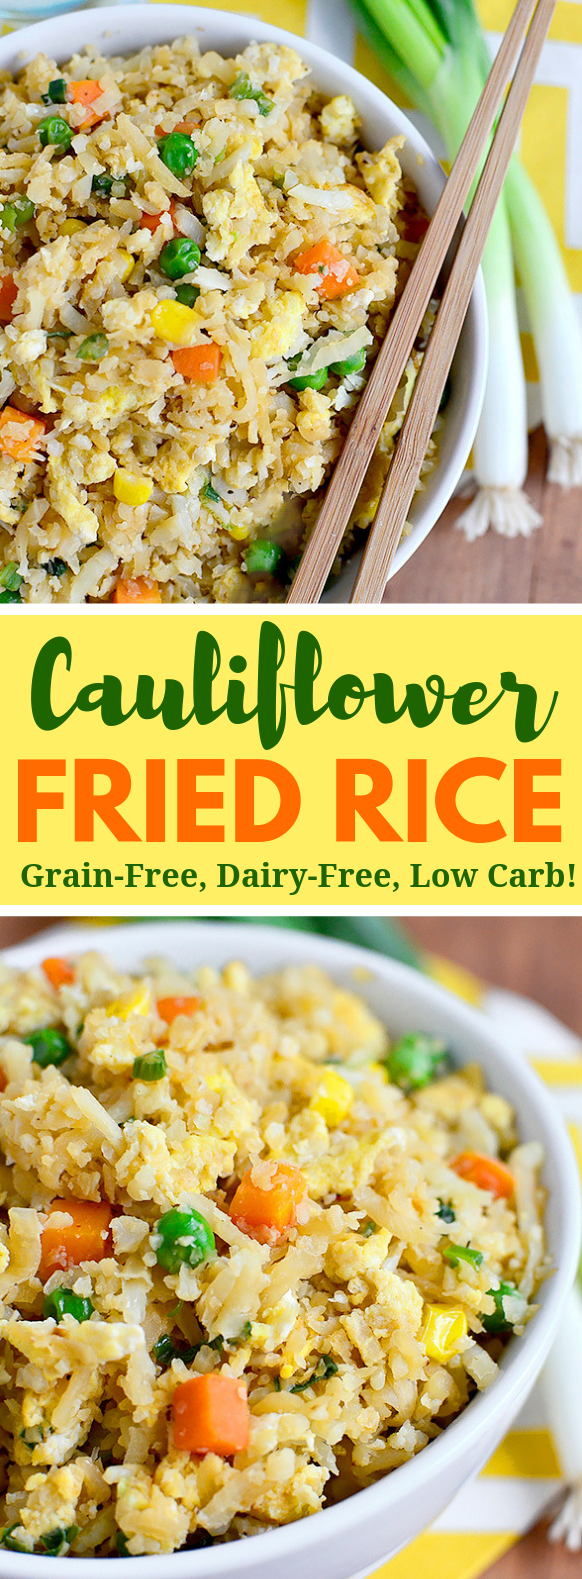 Cauliflower Fried Rice #healthydiet #lowcarb